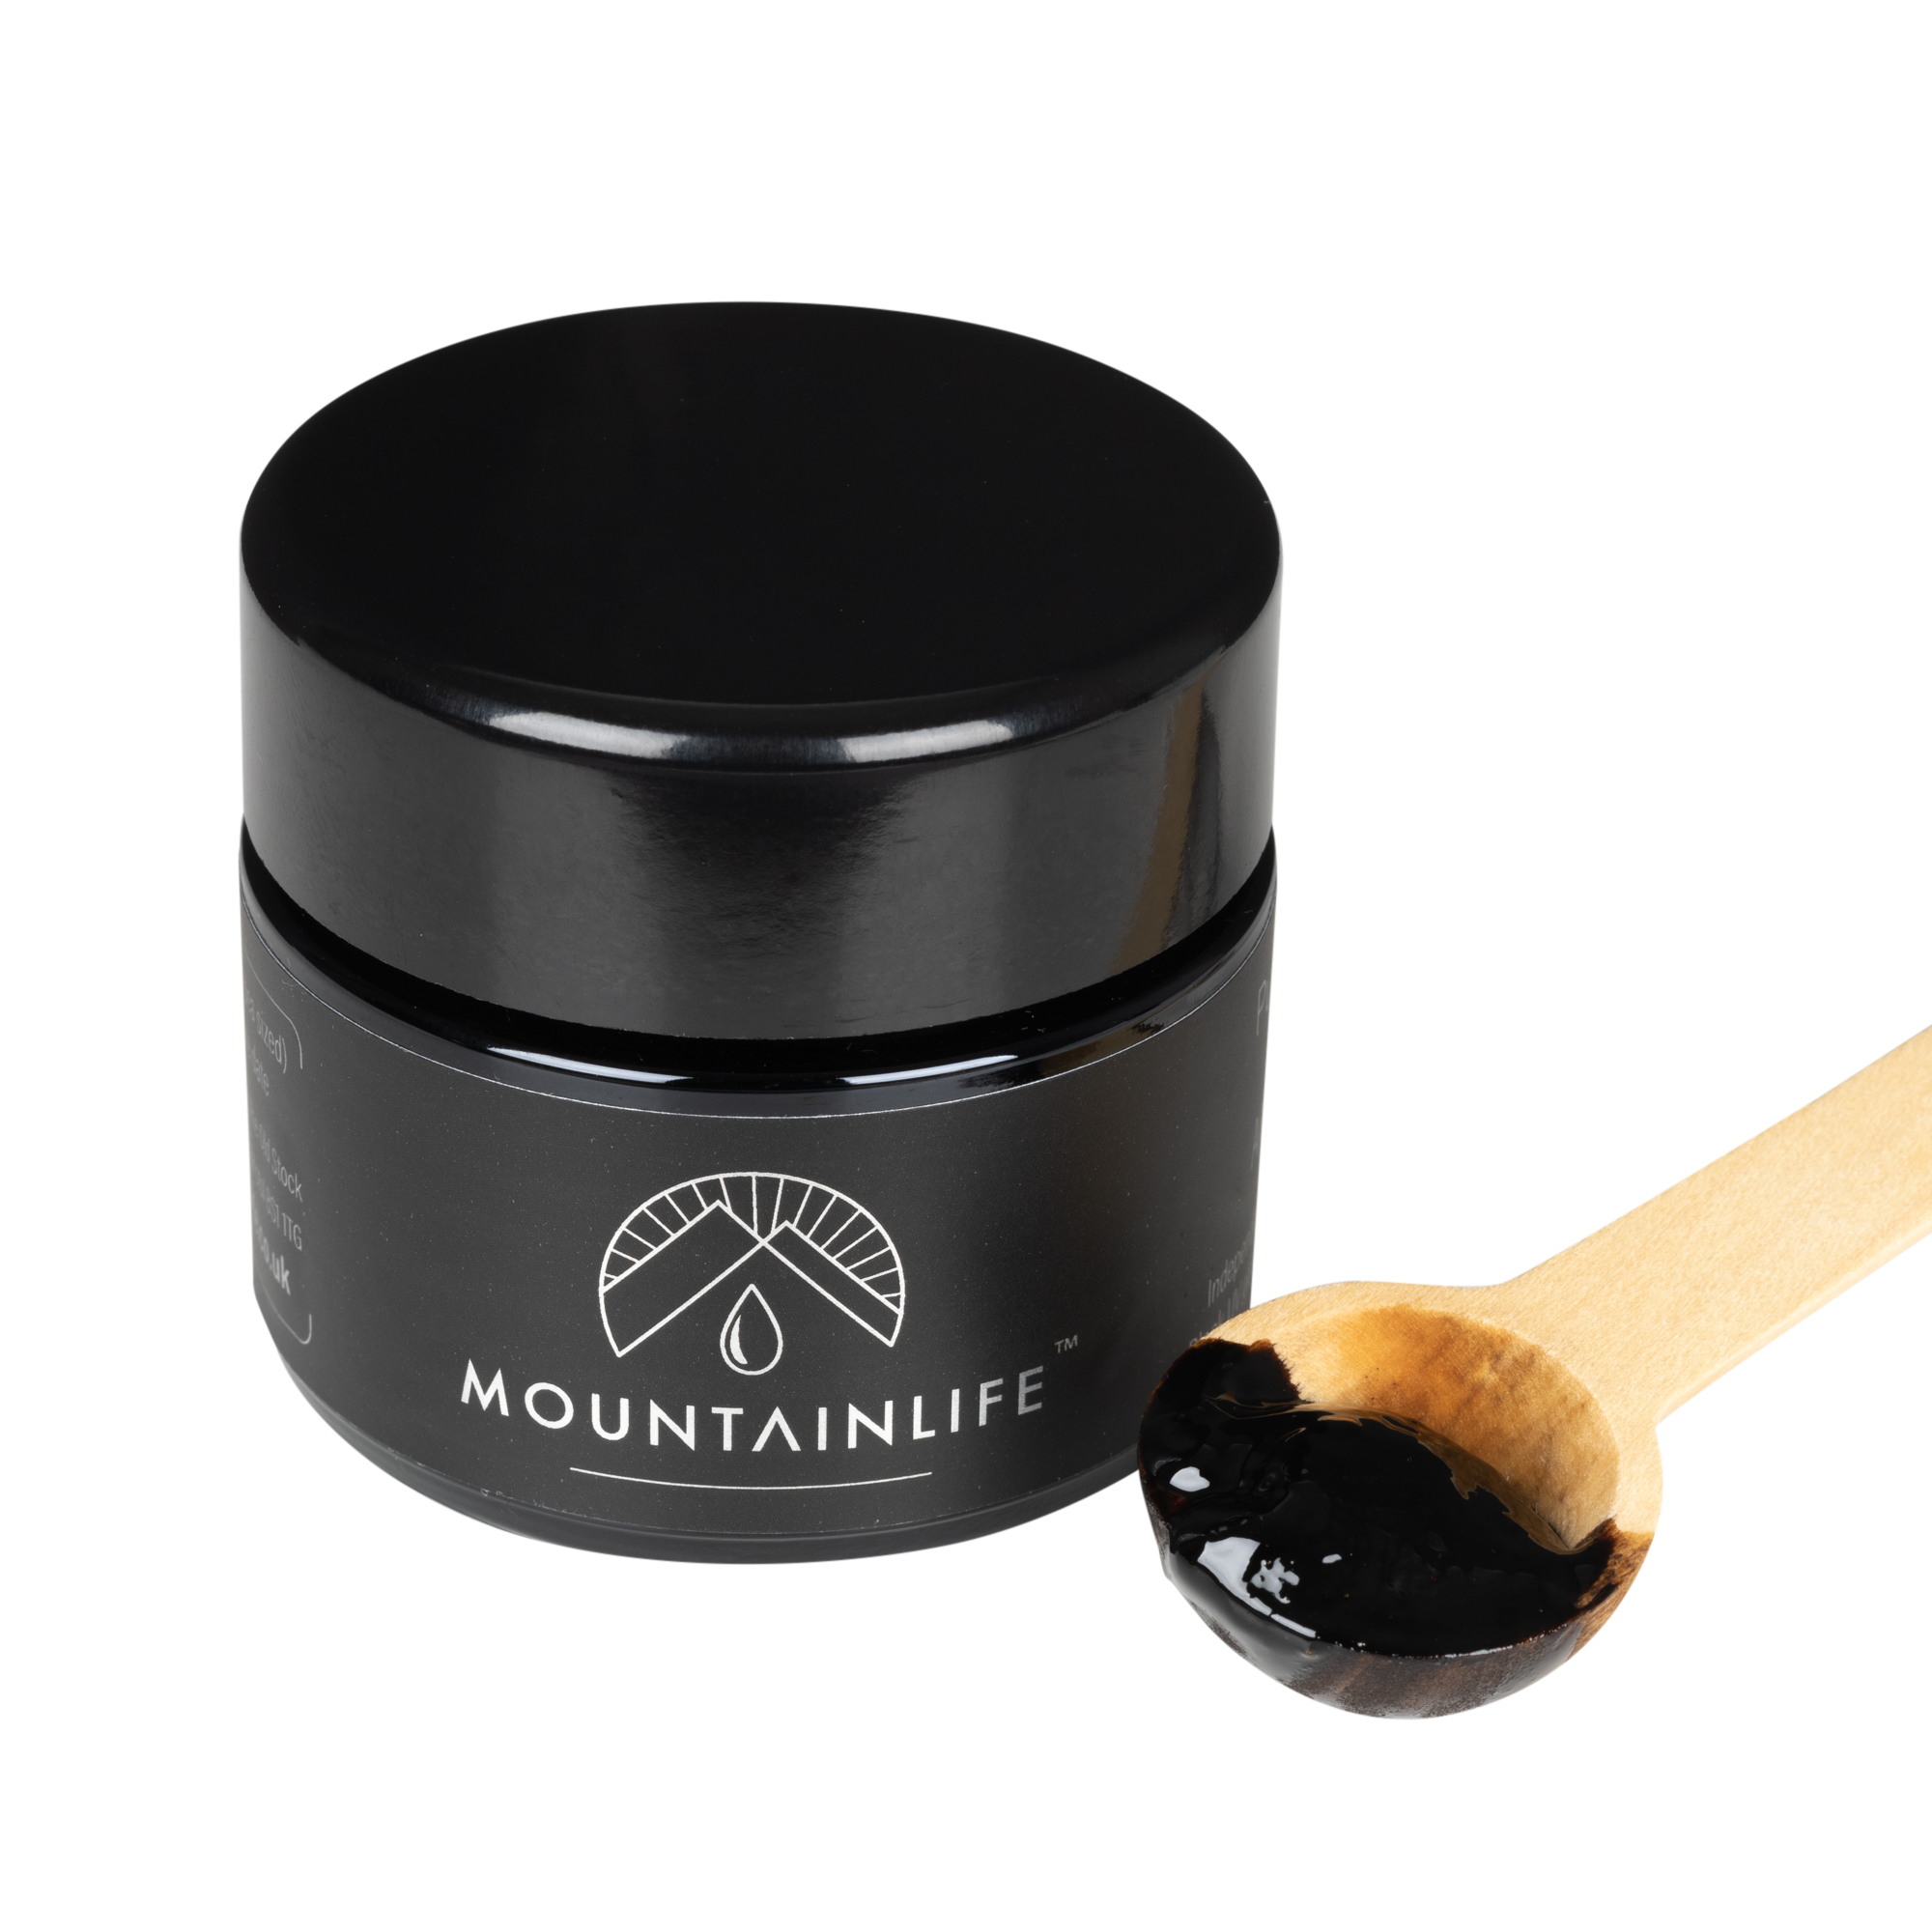 mountainlife shilajit resin in 30g jar with wooden scooping spoon